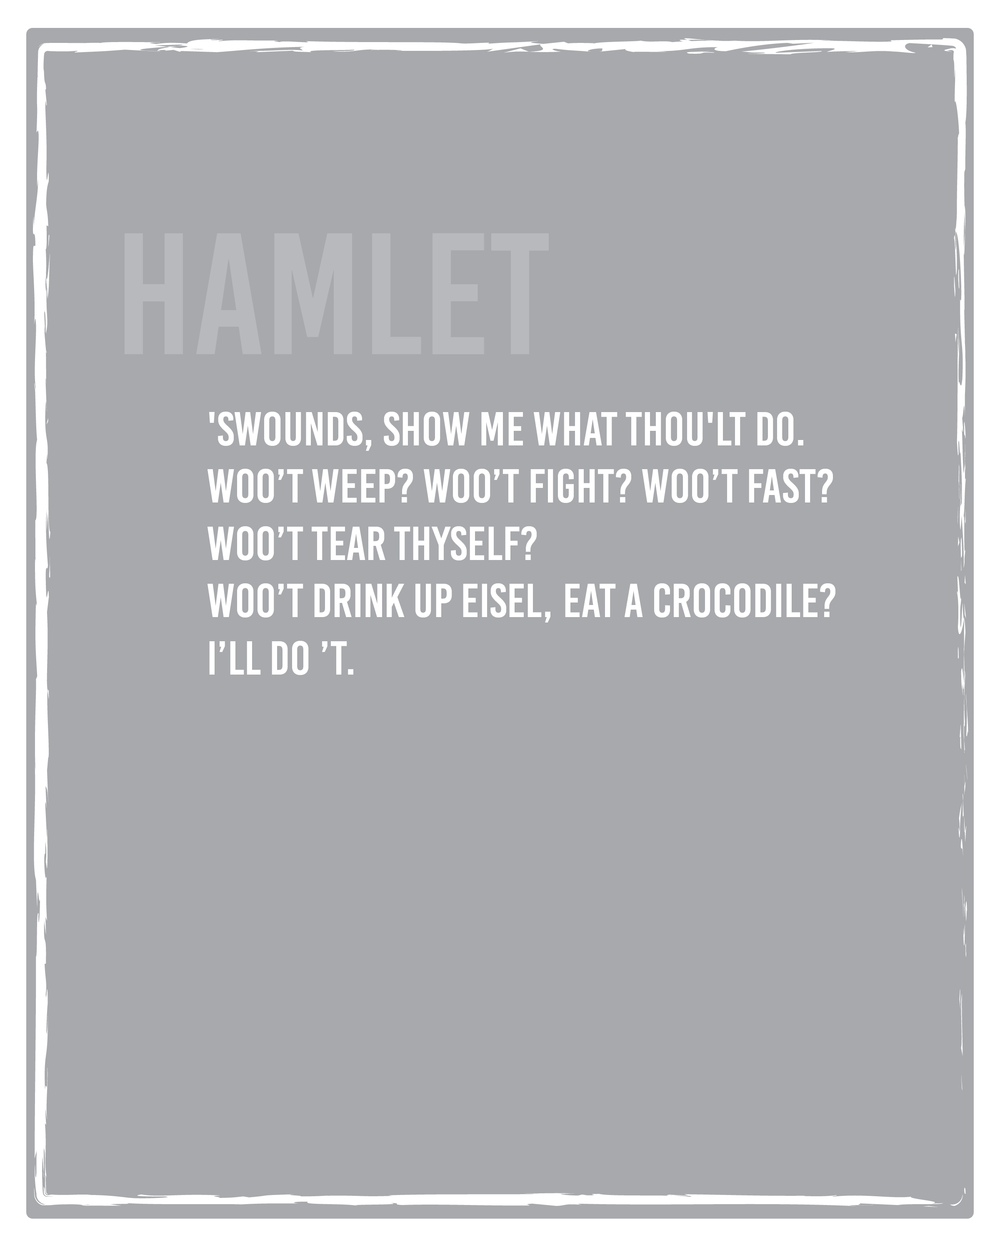 Hamlet Posters ACT V-02.png